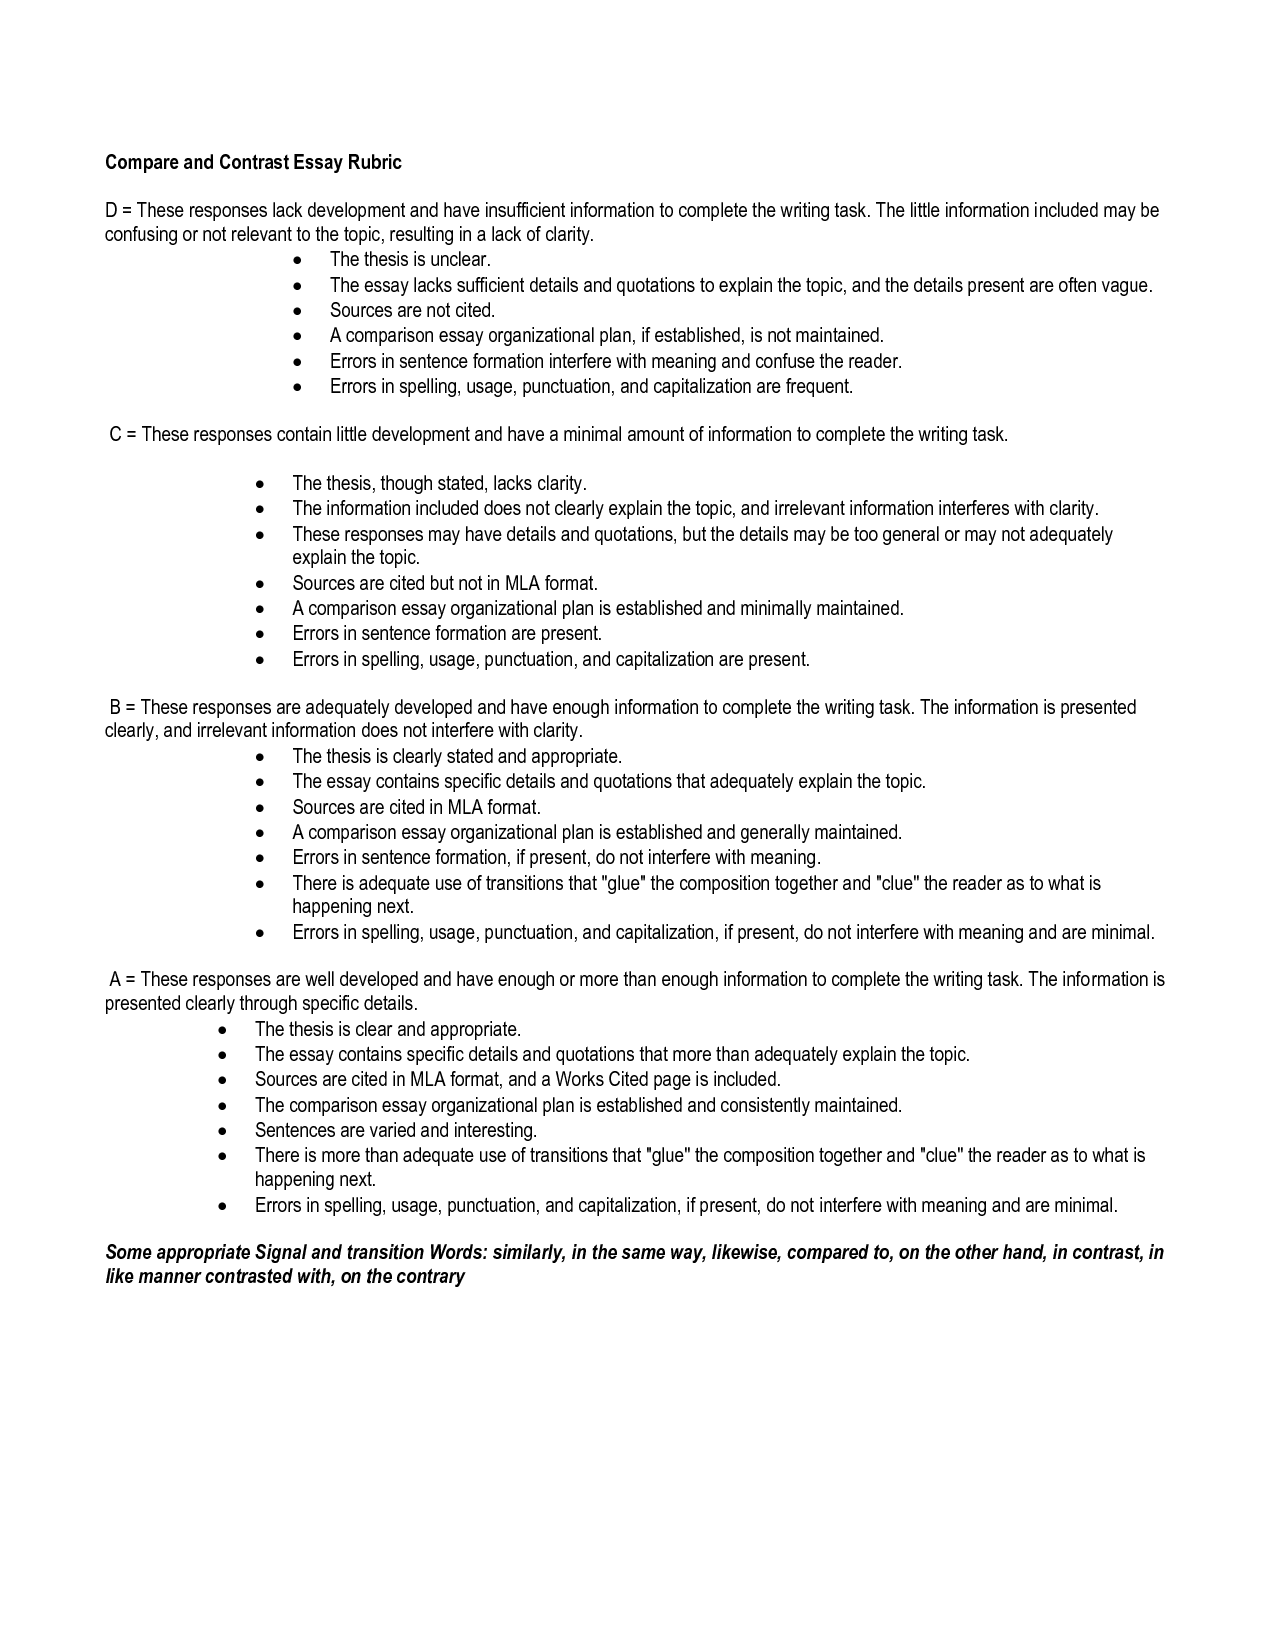 Compare And Contrast Essay Outline Template